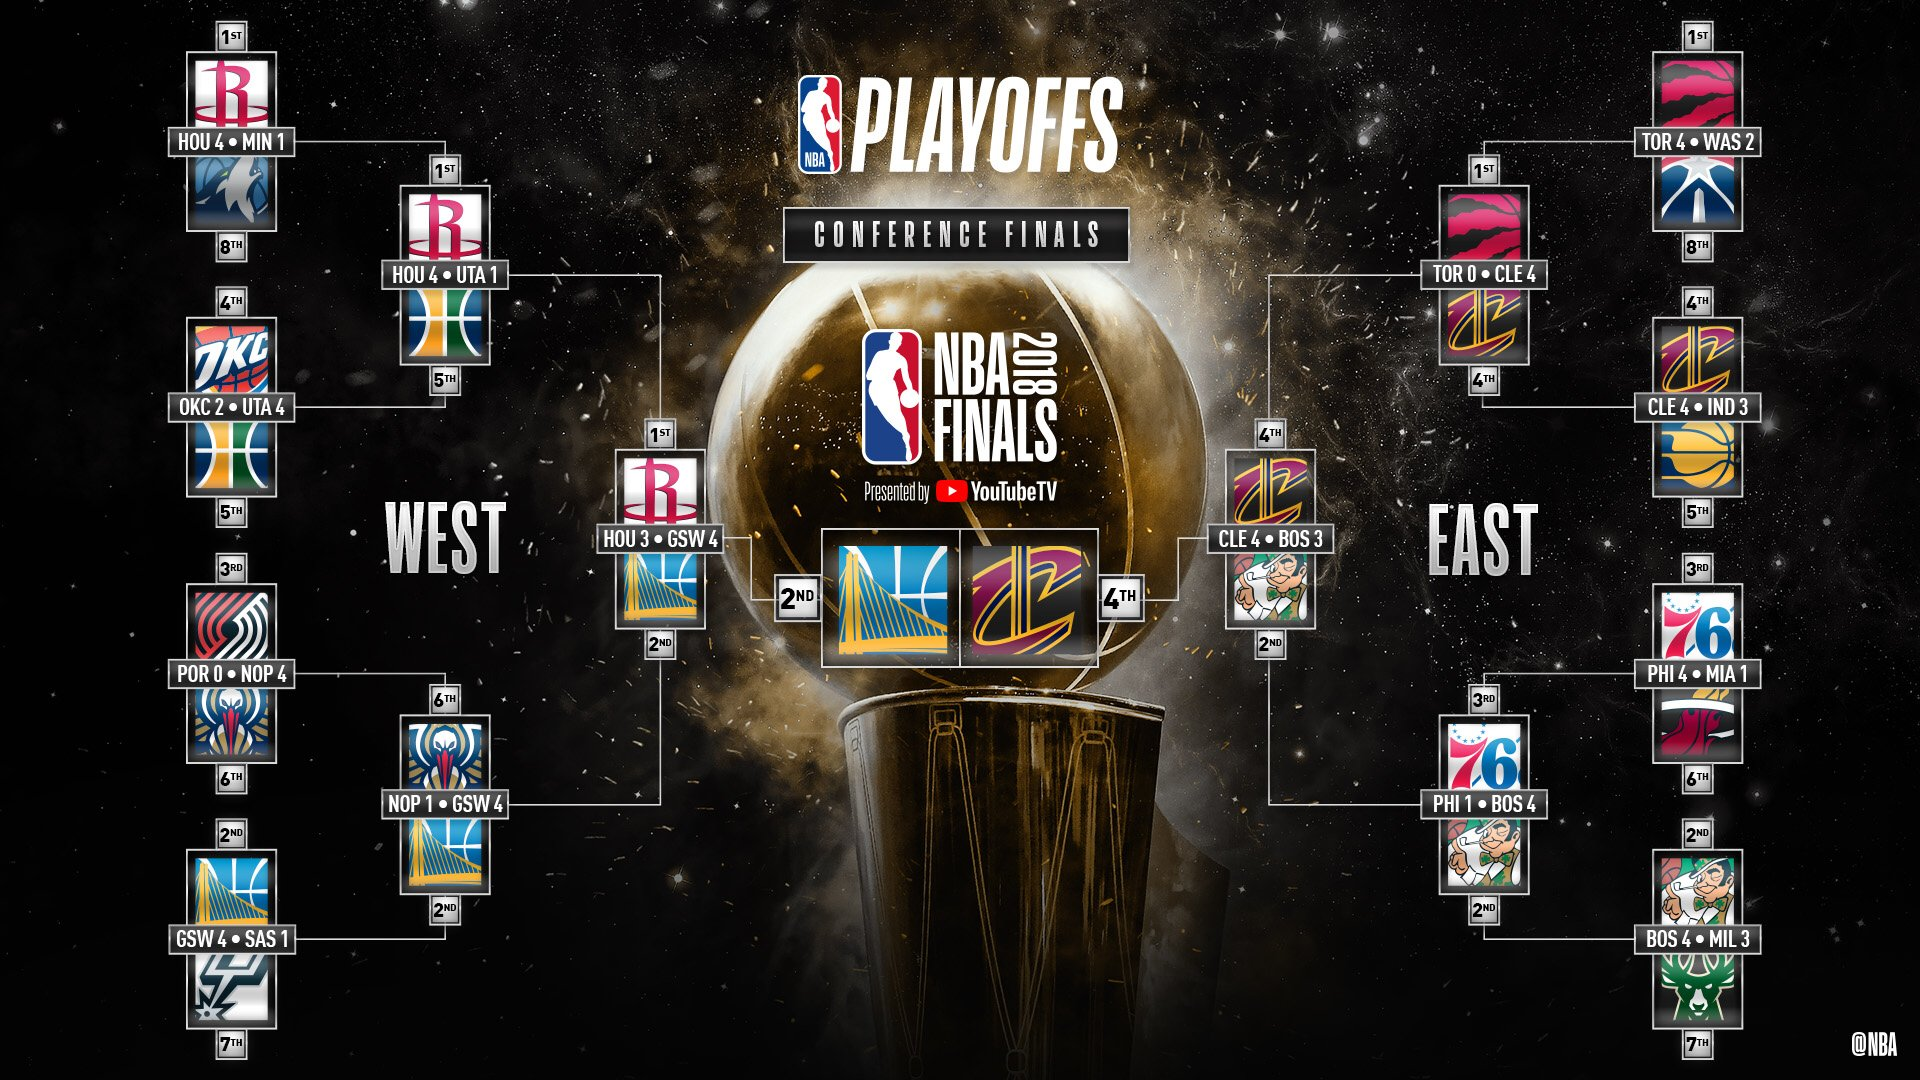 Golden State Warriors Vs Cleveland Cavaliers Live Stream